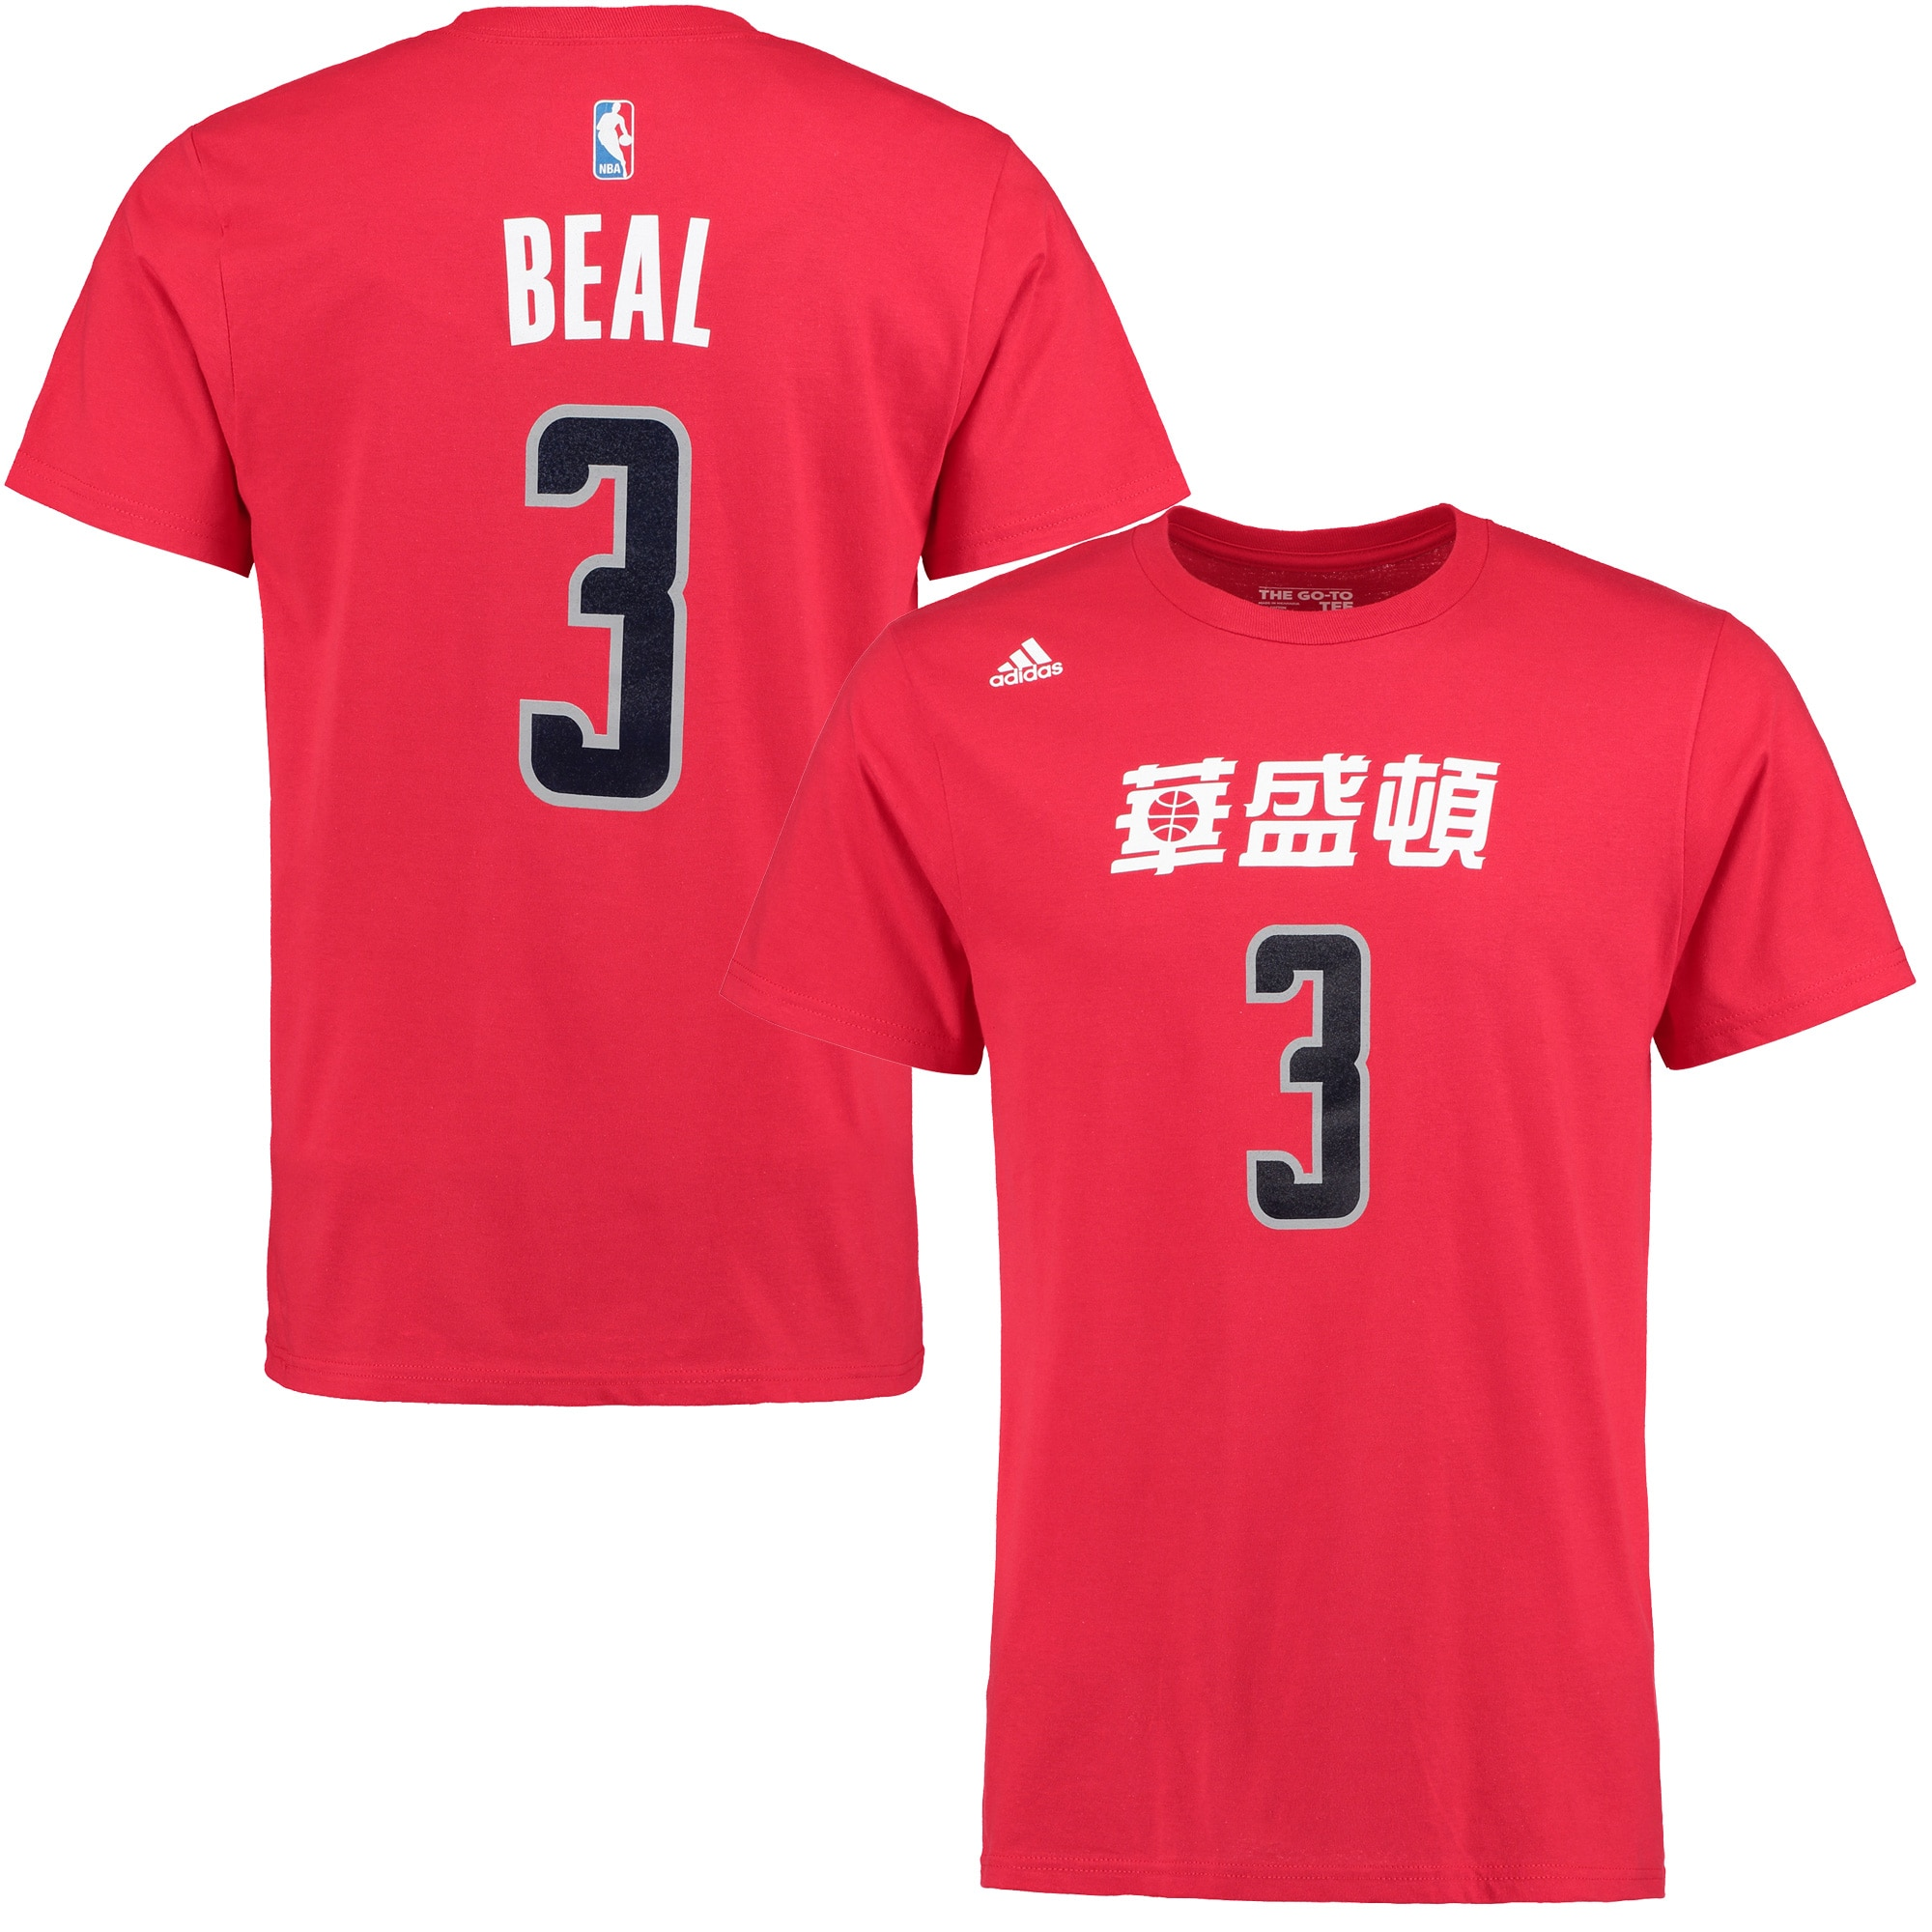 Bradley Beal Washington Wizards adidas 2016 Chinese New Year Name & Number T-Shirt - Red